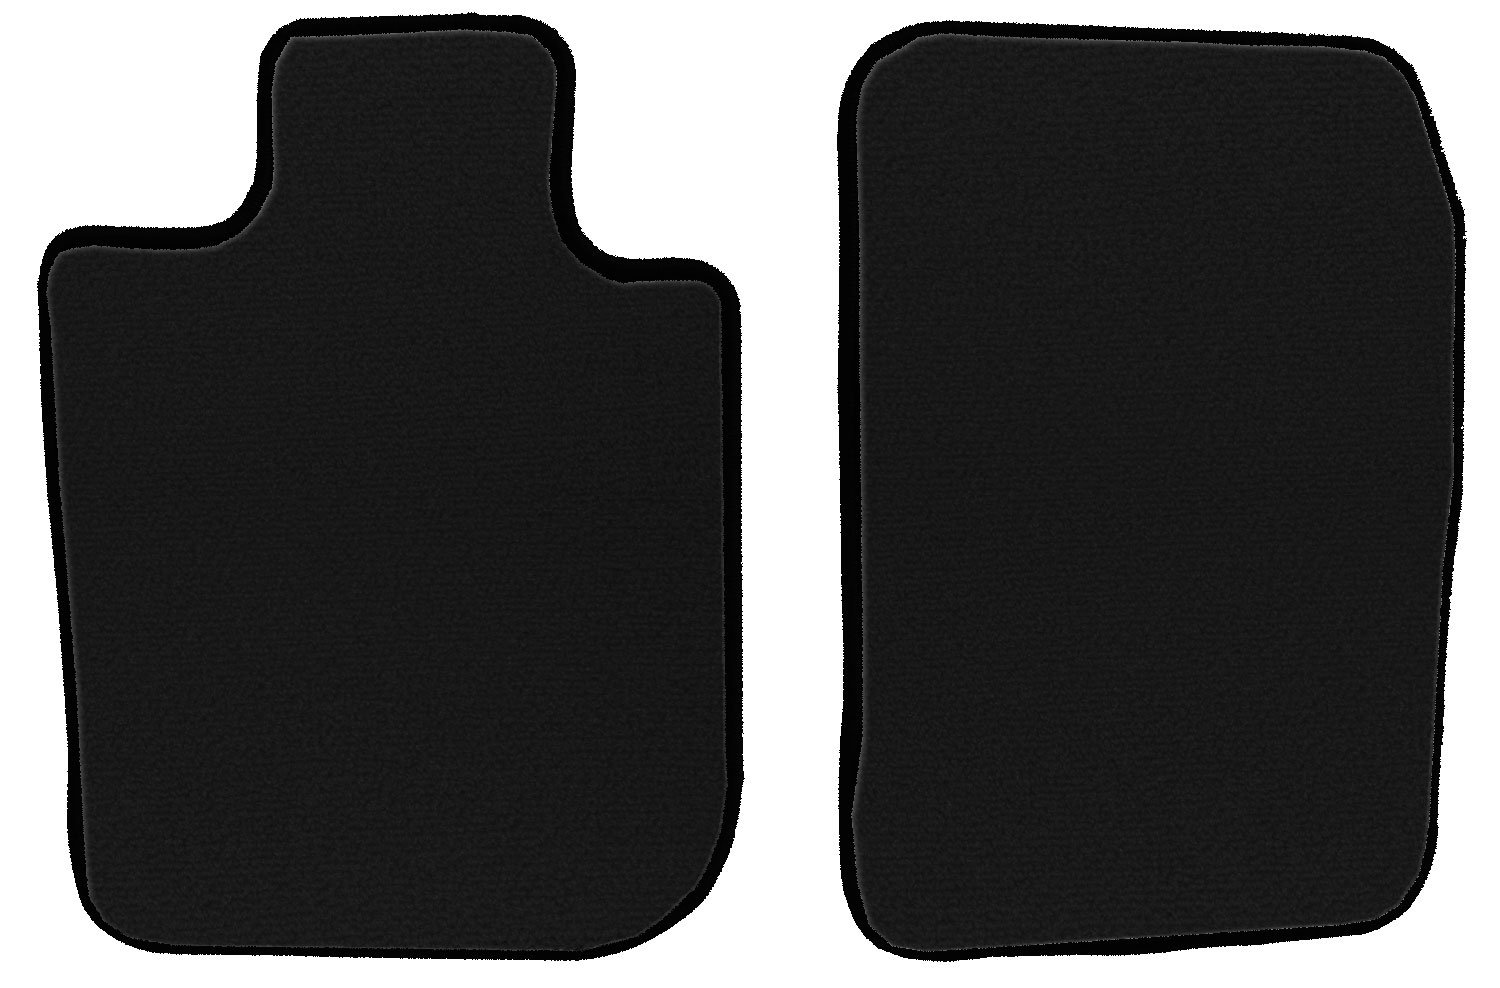 GGBAILEY D2345A-F1A-BK-LP Custom Fit Car Mats for 2006 2007 2008 Dodge Ram Mega Cab Black Loop Driver /& Passenger Floor